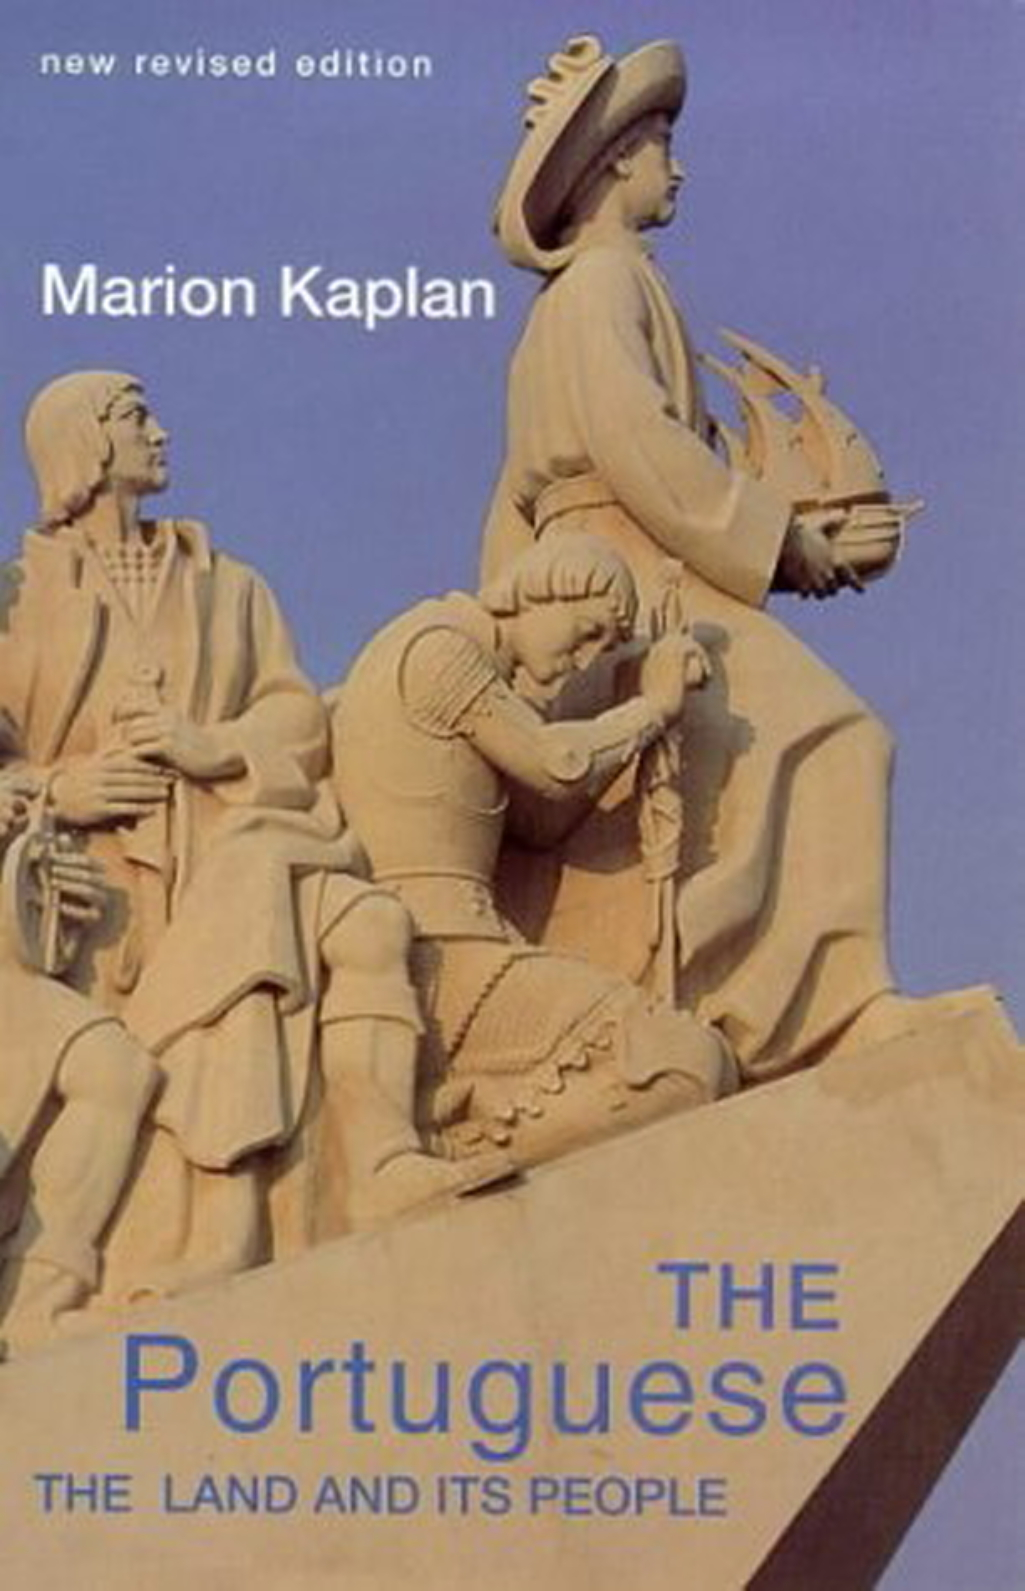 The Portuguese: The Land and its People by Marion Kaplan | © Penguin Books Ltd